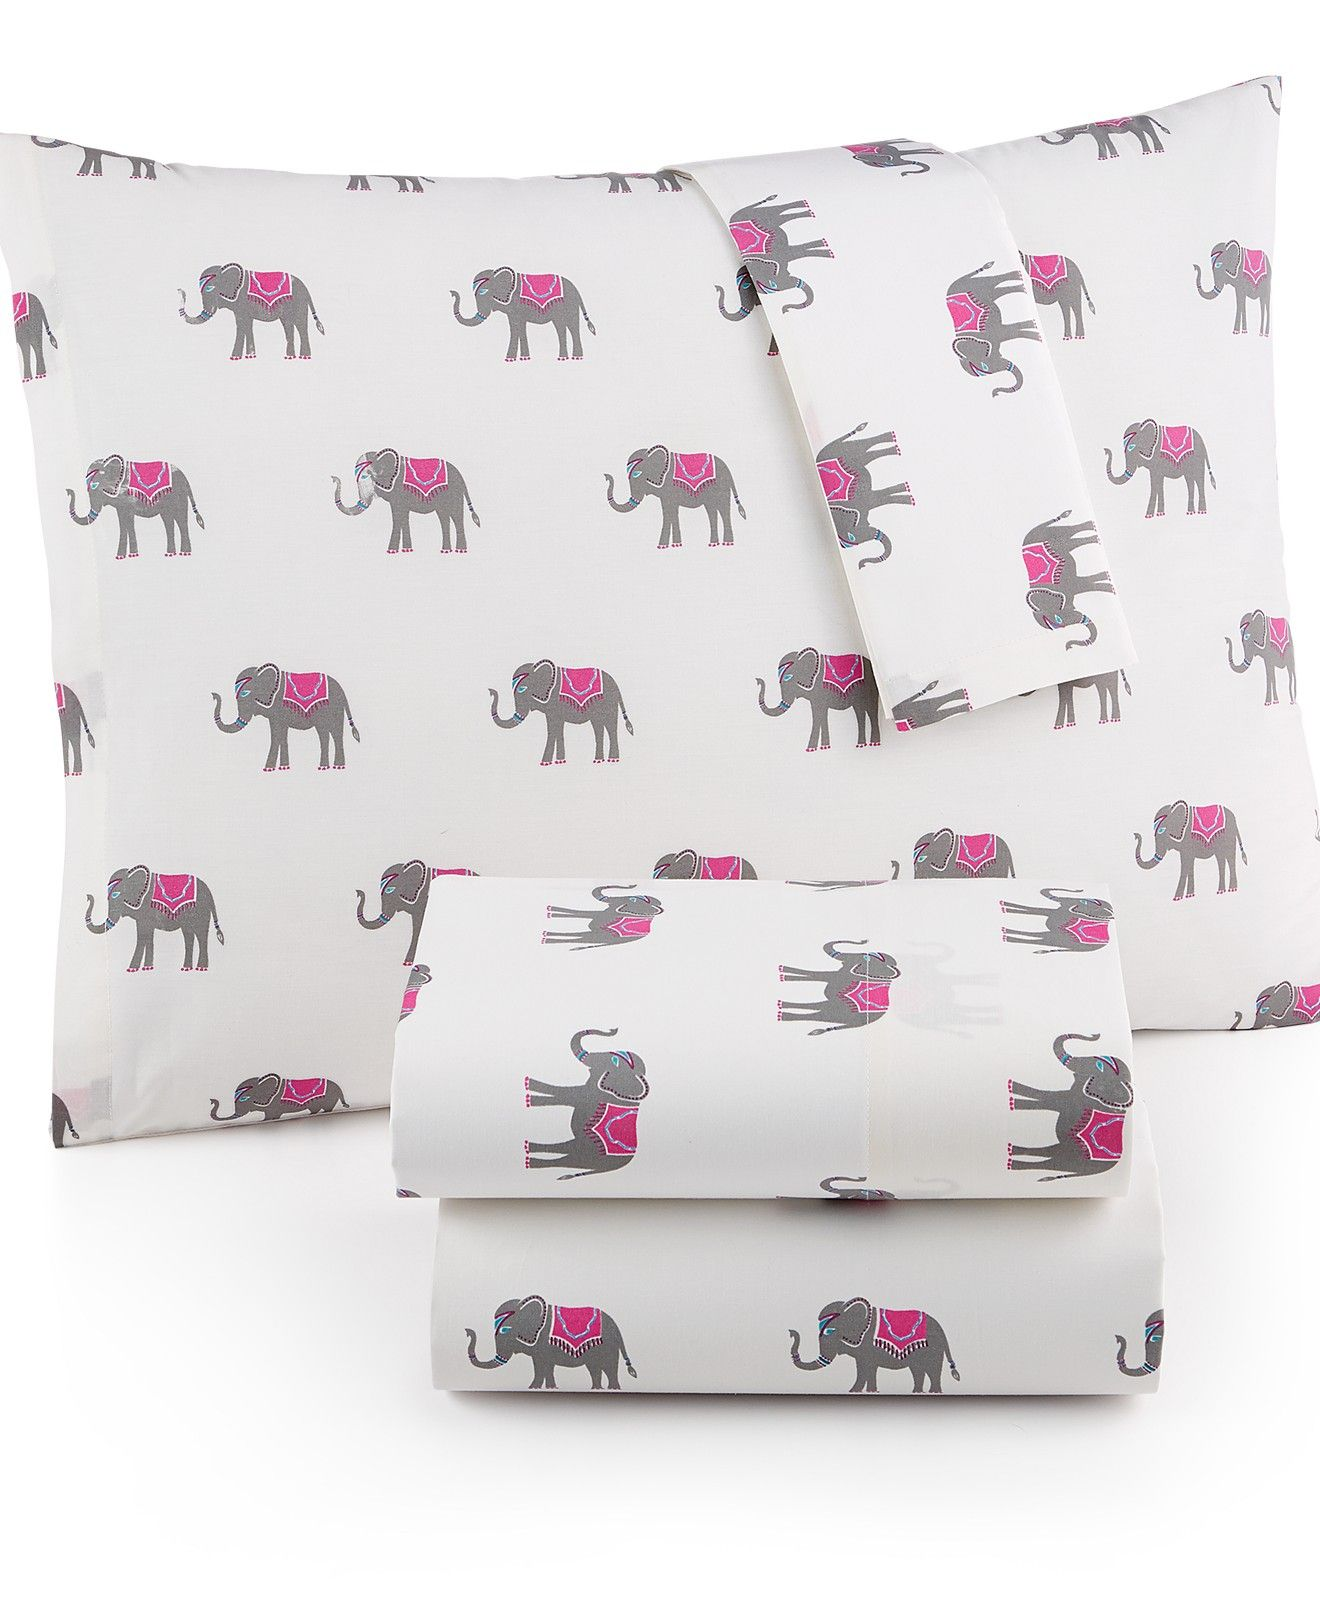 Whim by Martha Stewart Collection Novelty Print Cotton Percale Sheet Sets, Only at Macy's - Sheets - Bed & Bath - Macy's